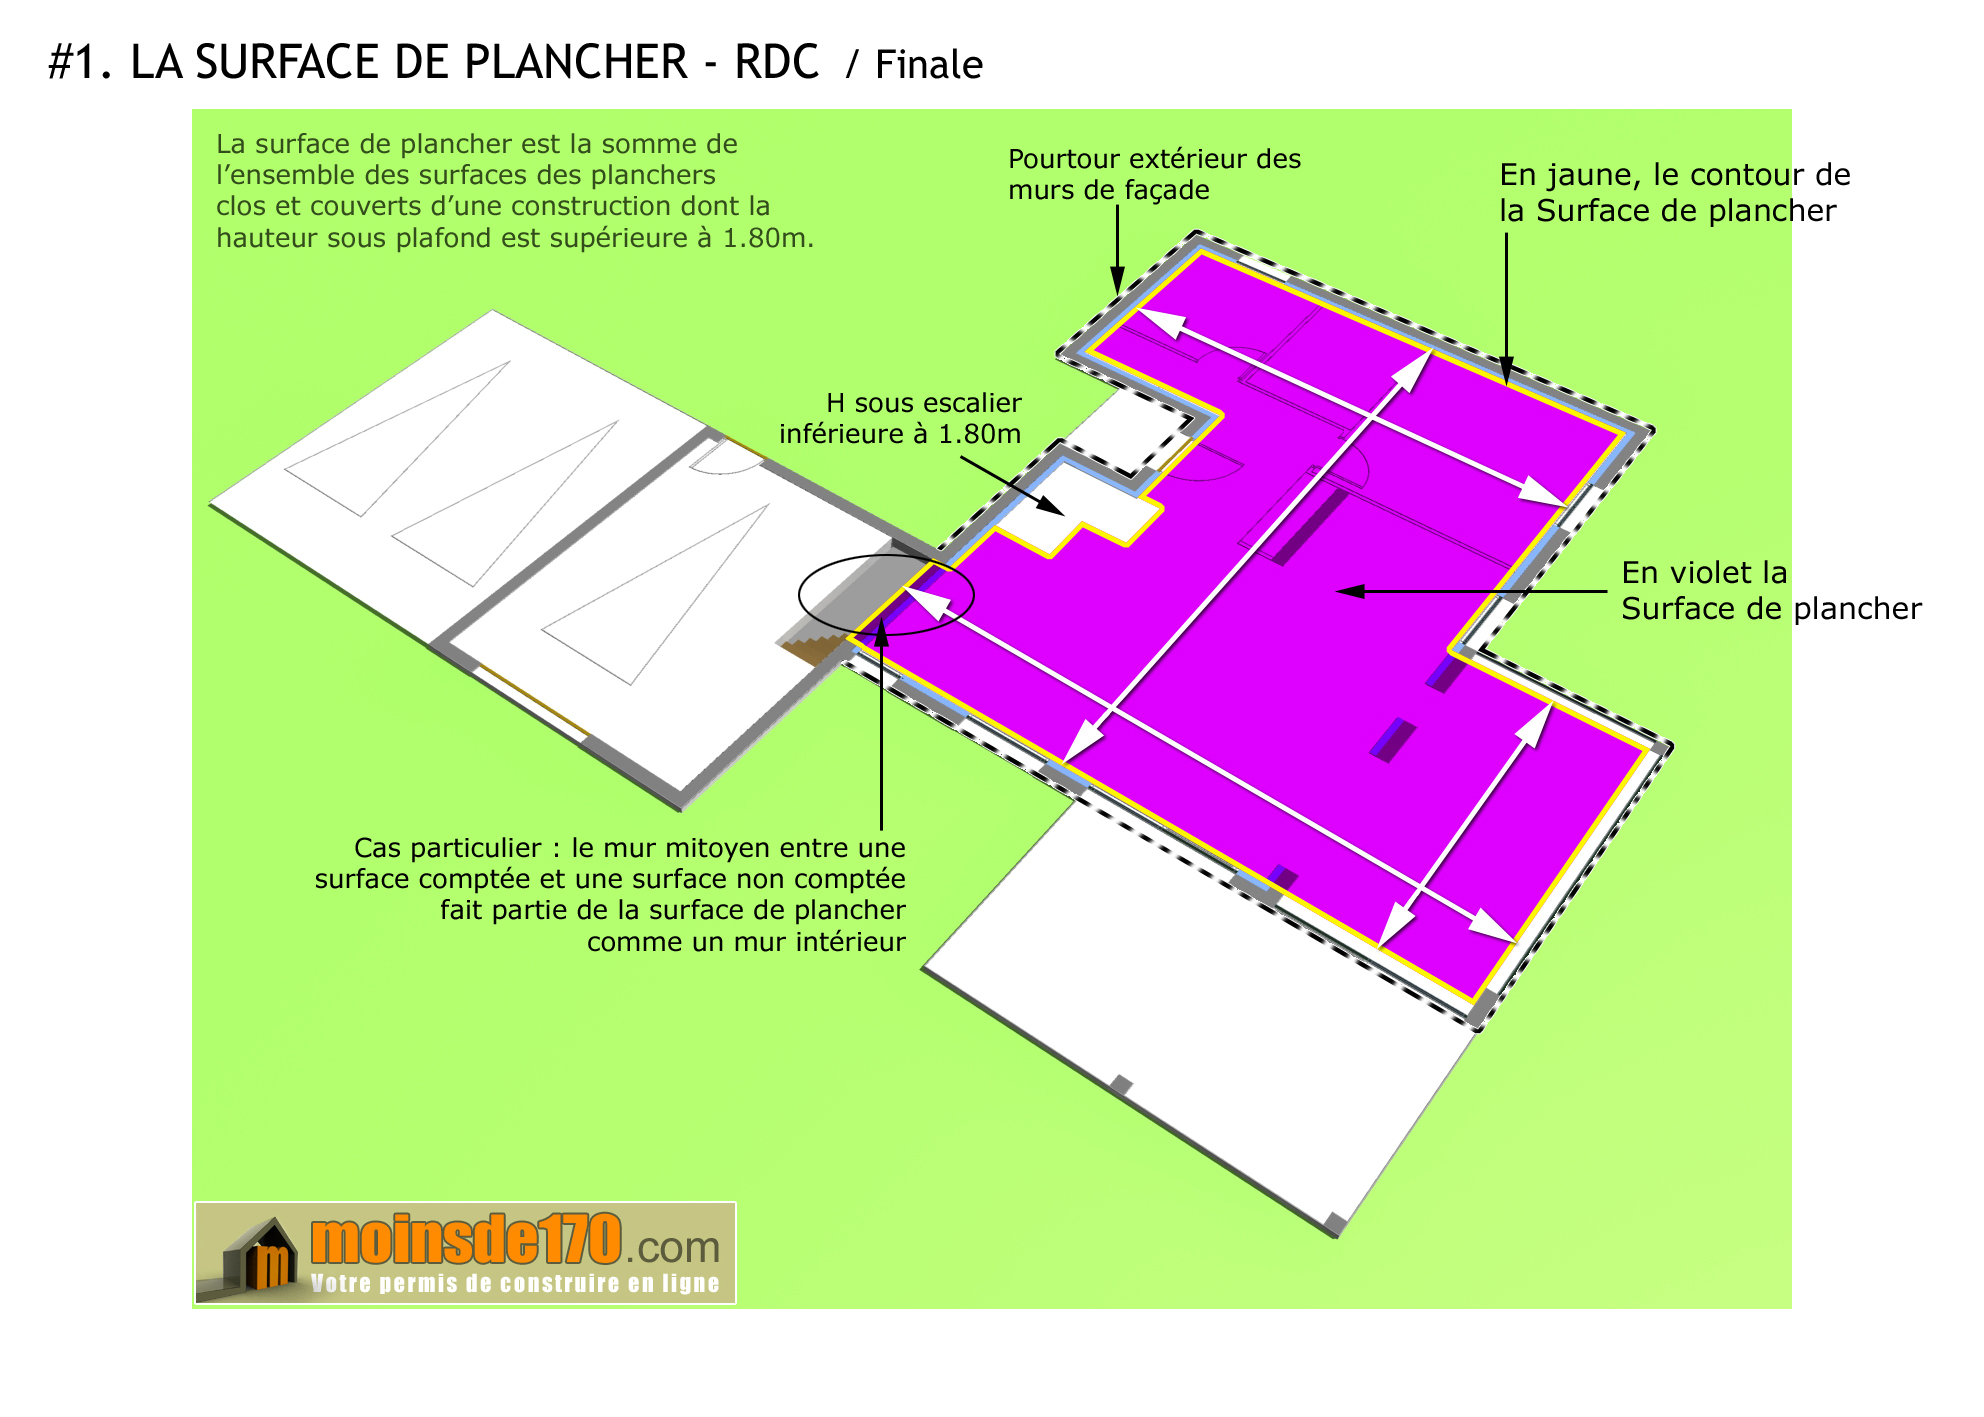 Surface de plancher illustration sur un projet de maison for Veranda surface habitable ou non